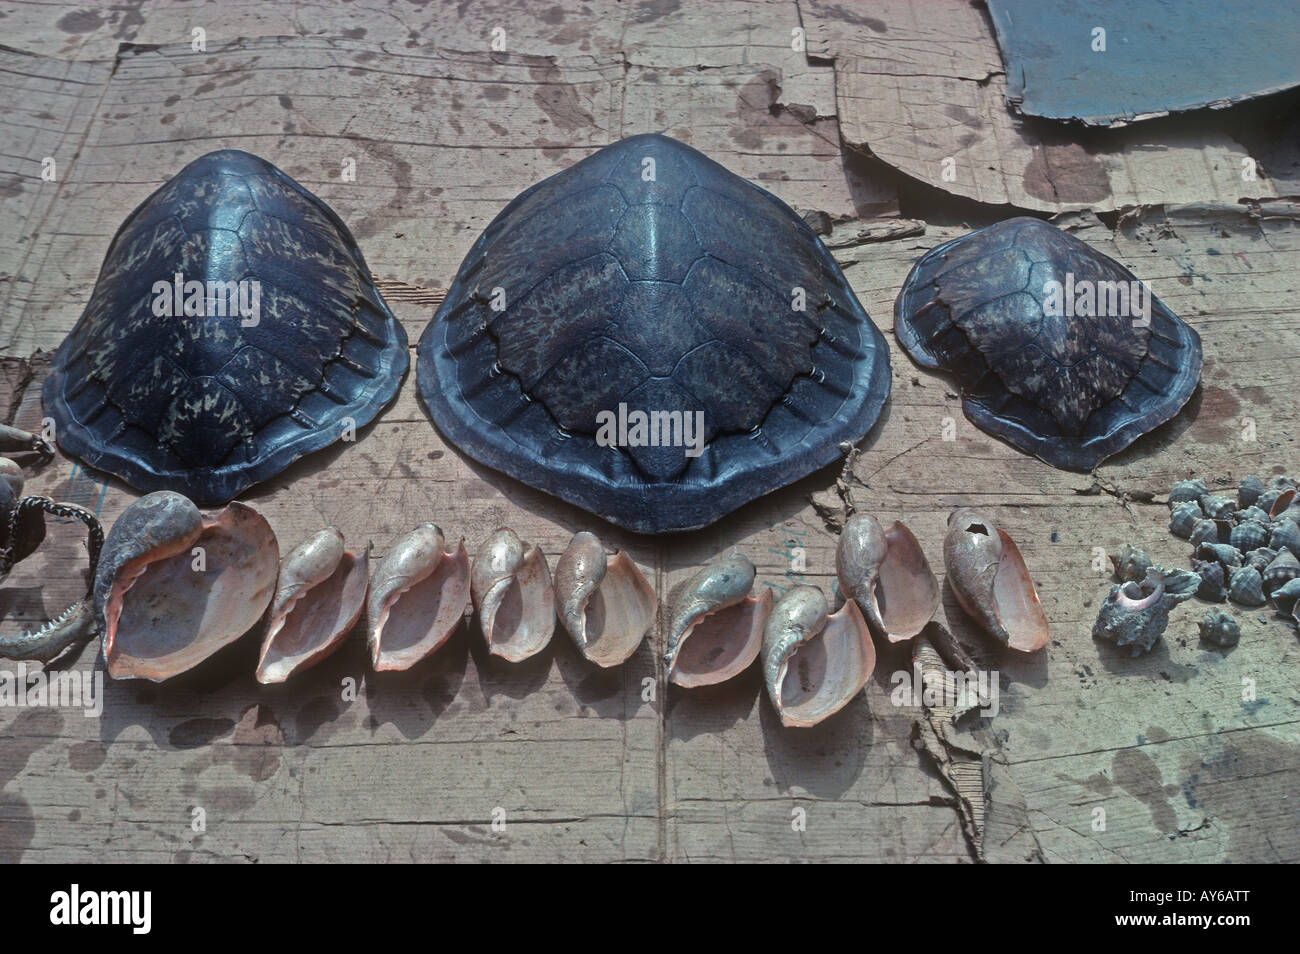 Green Turtle Shells For Sale At Tourist Hotel The Gambia Stock Photo